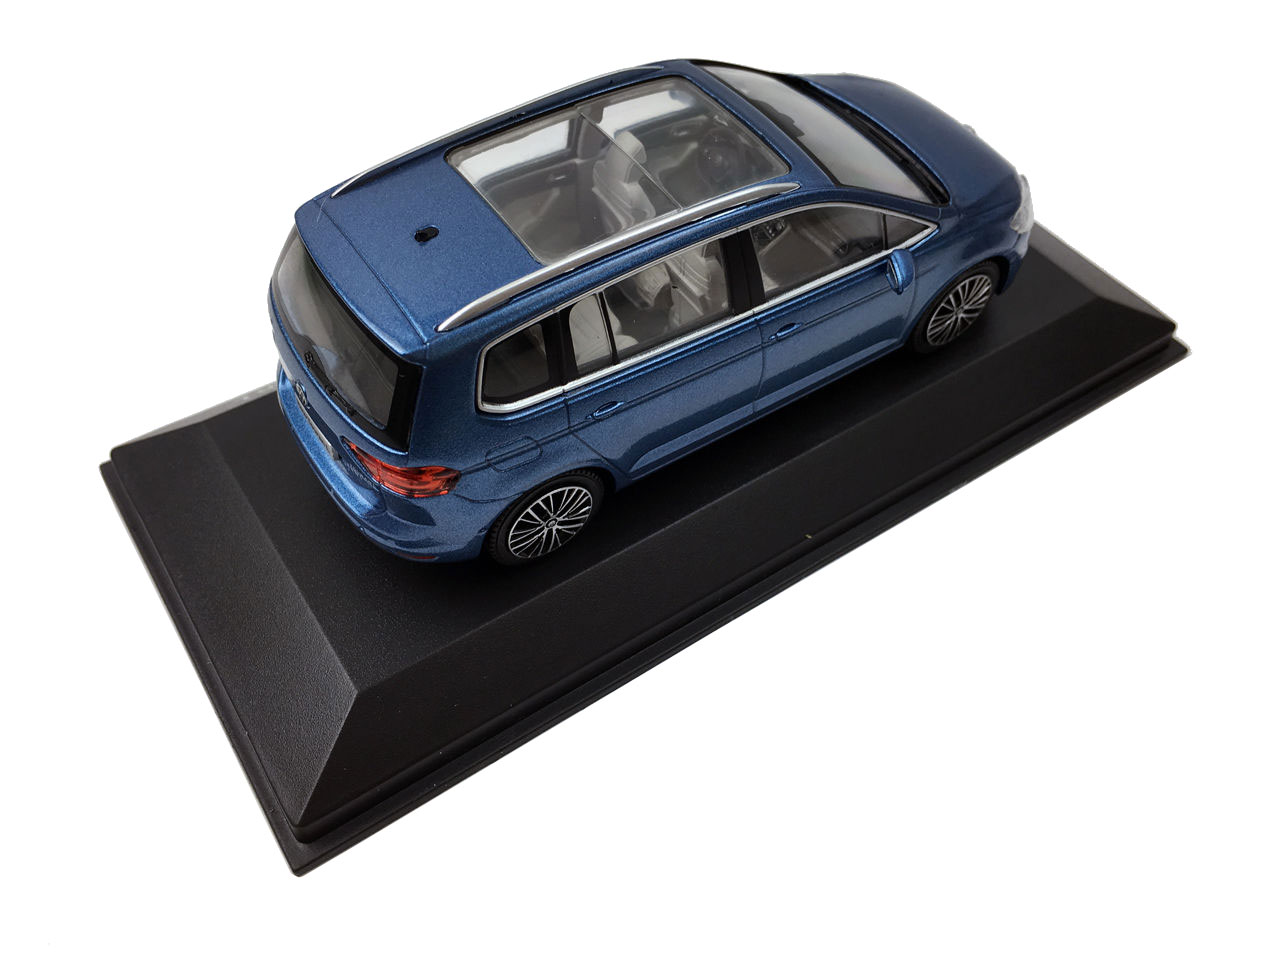 Volkswagen Touran L 2016 1/43 Scale Die-cast model car 5